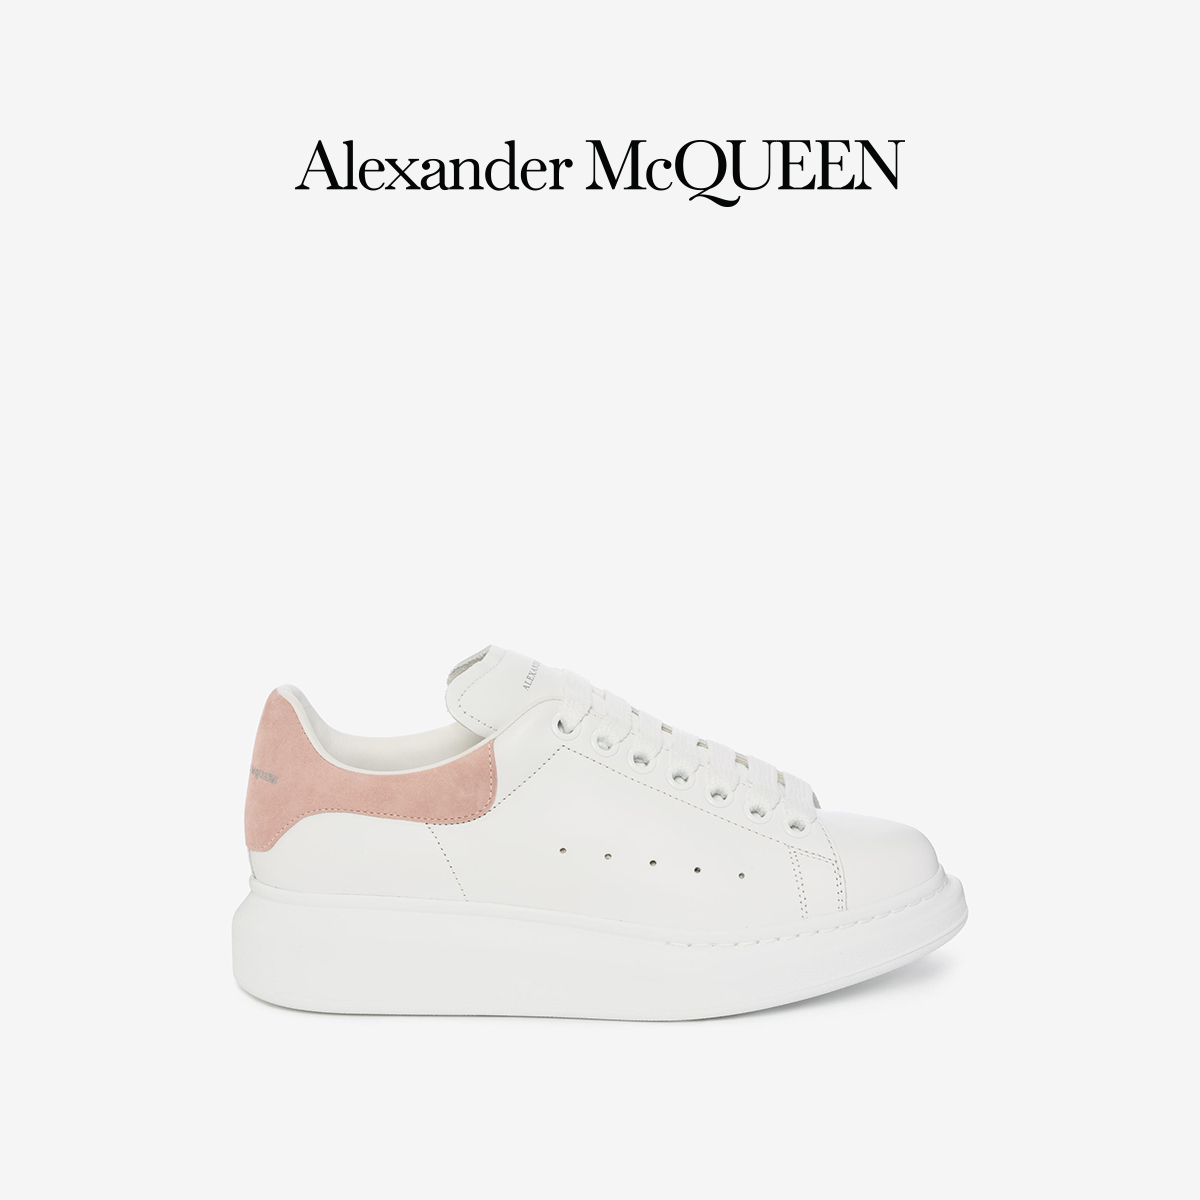 Alexander McQueen women's shoes women's sports casual shoes